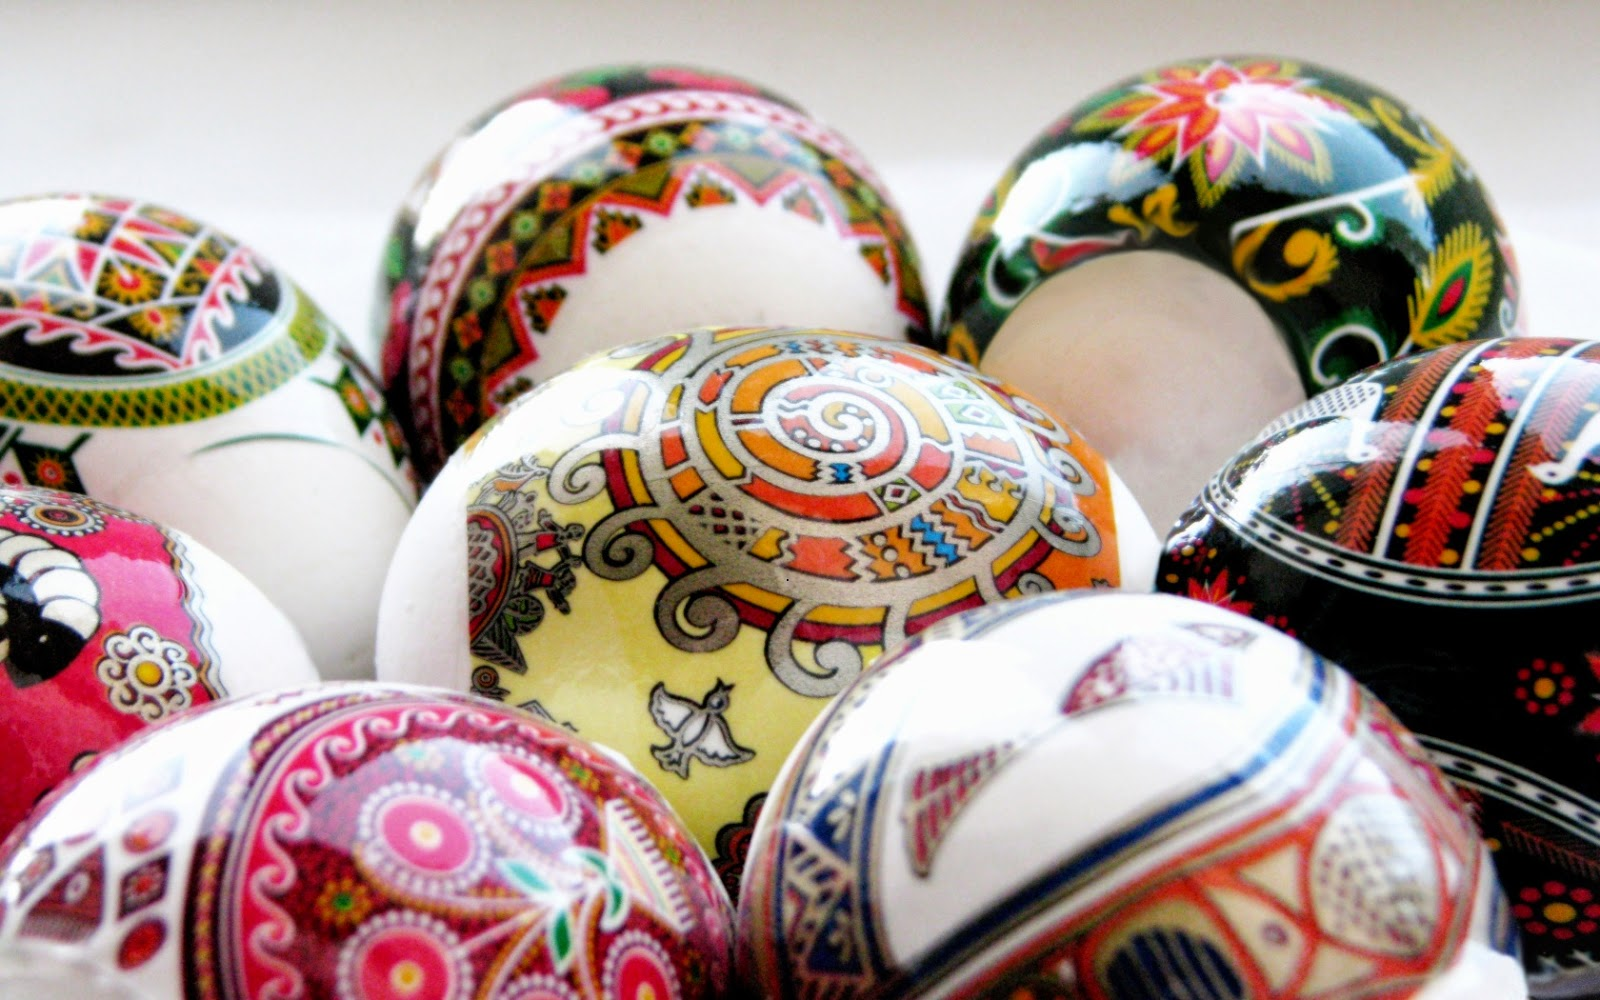 {50+} Easter Egg Decorated Images | Easter Egg Decorating Ideas